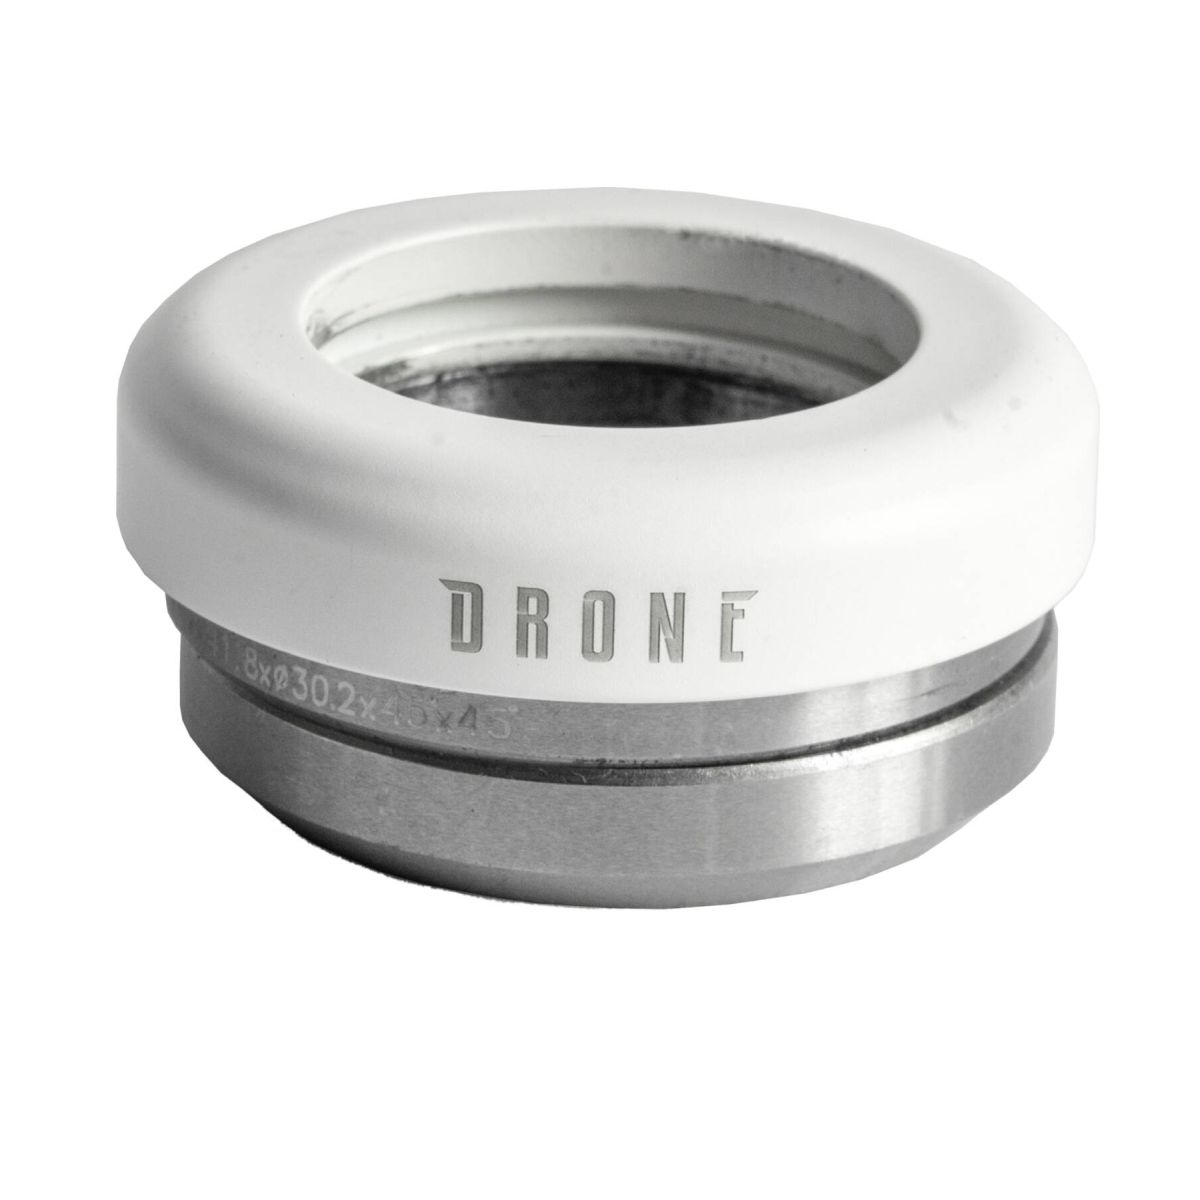 Stery Drone Synergy II White